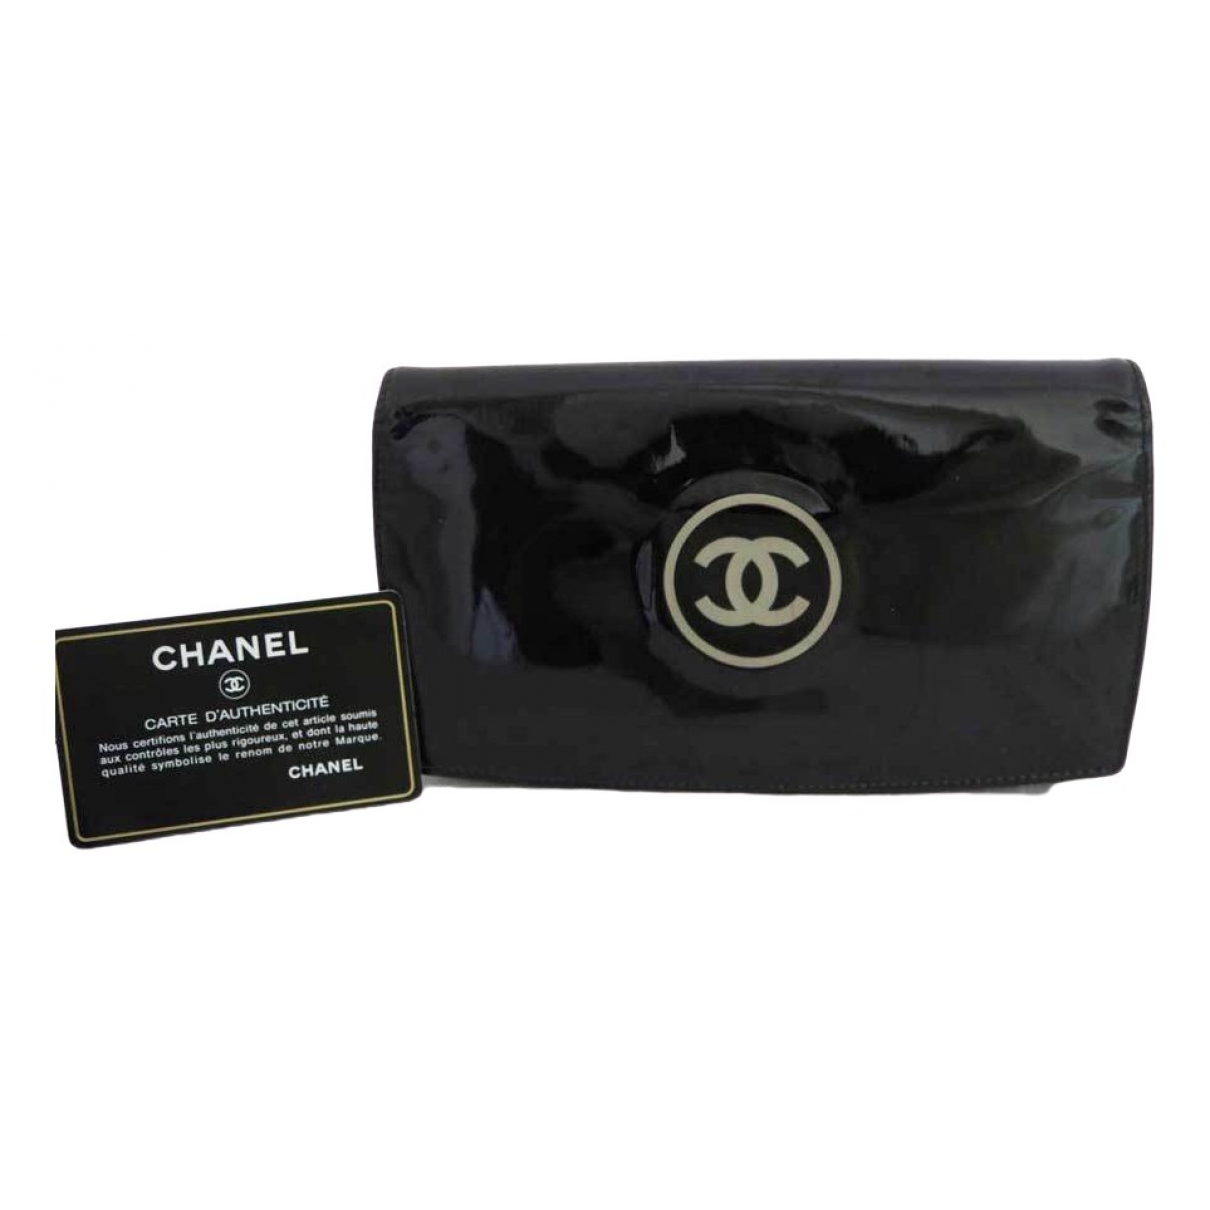 Chanel \N Black Patent leather wallet for Women \N